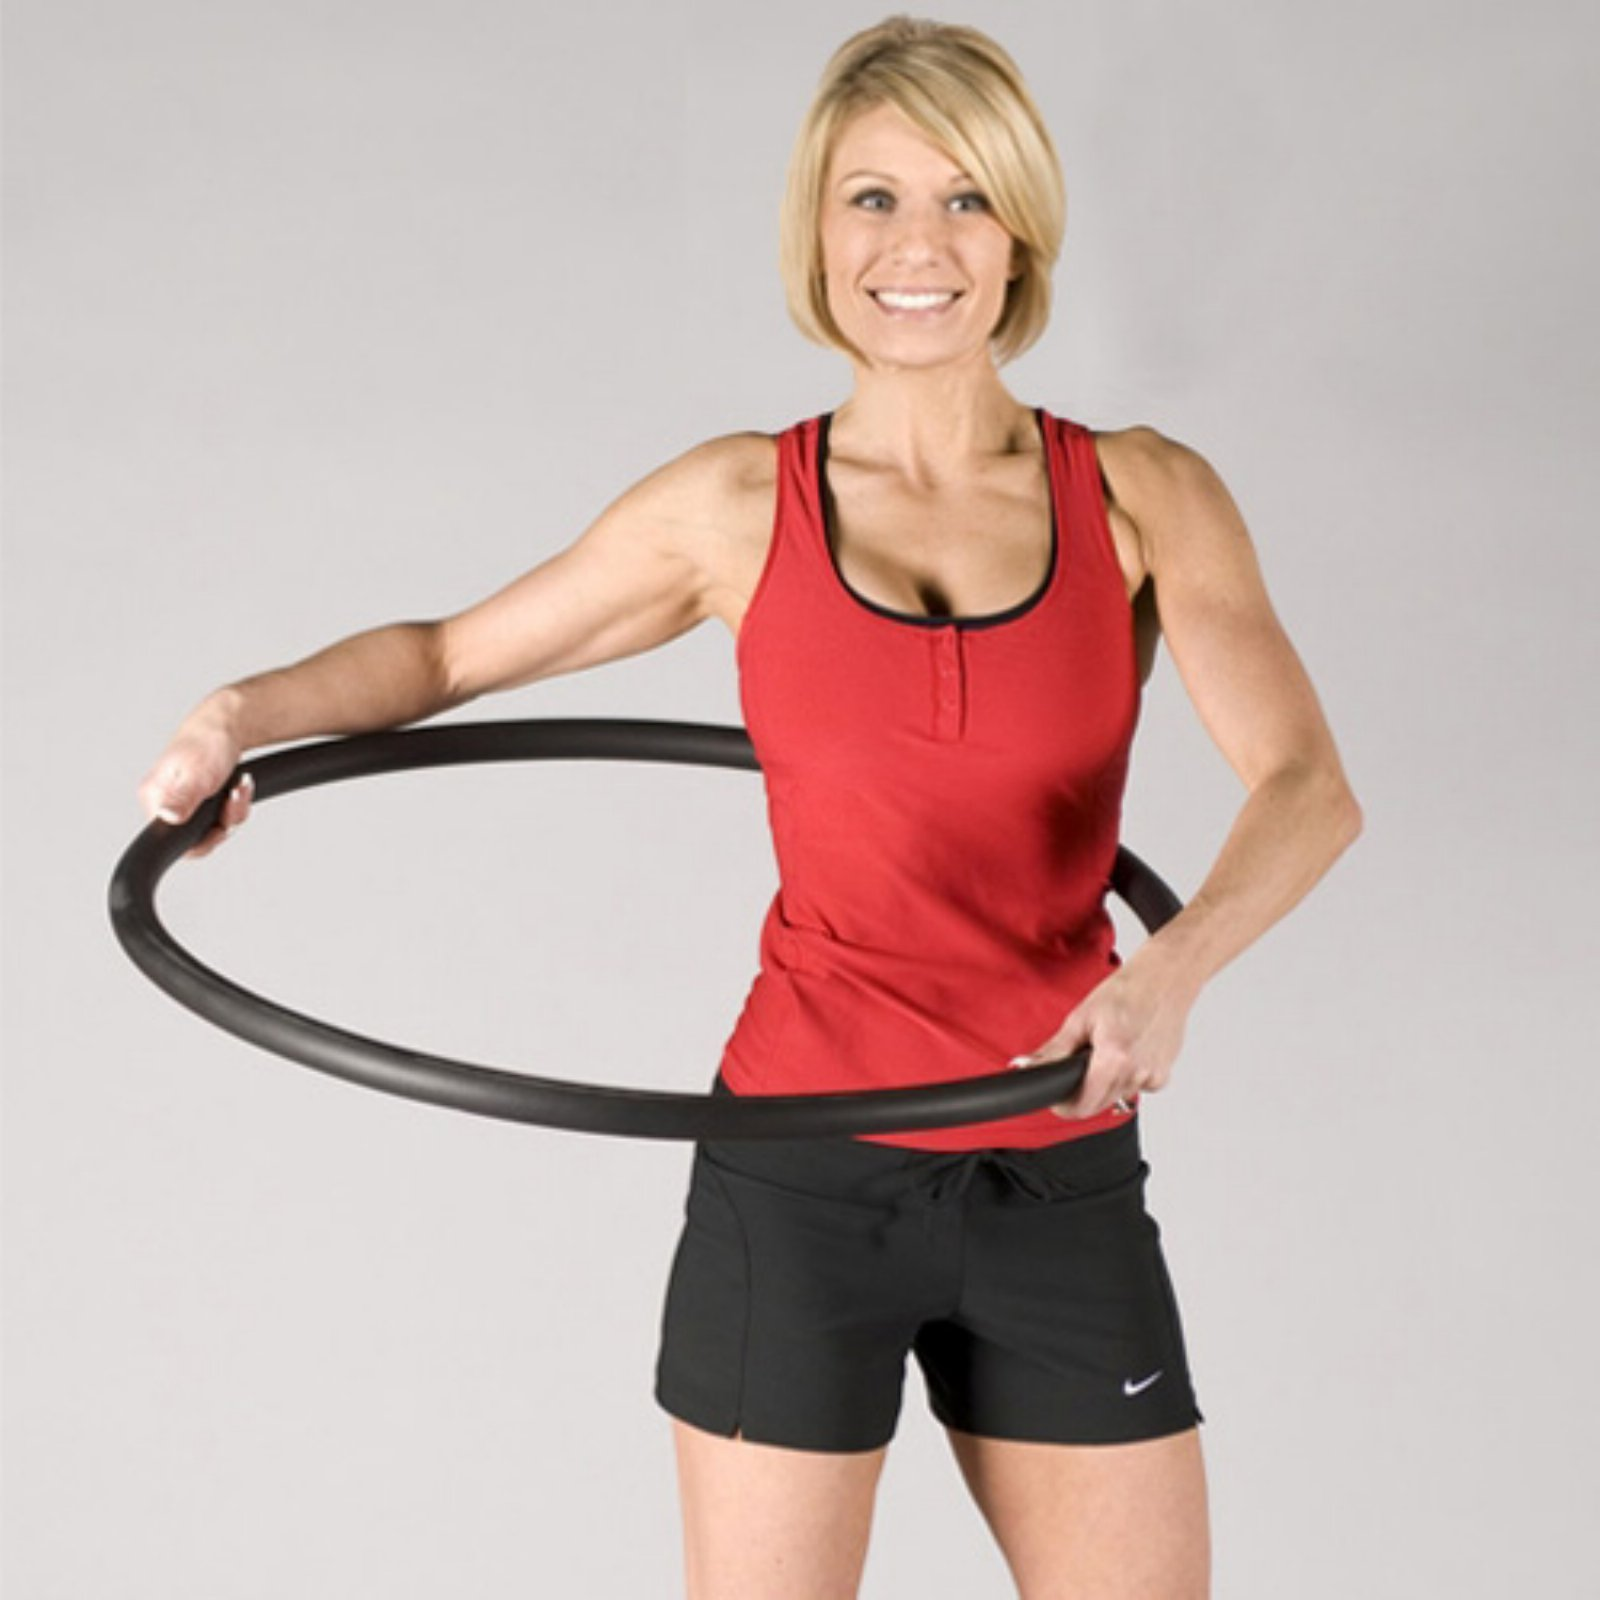 j/fit 3 lb. Weighted Exercise Hoop